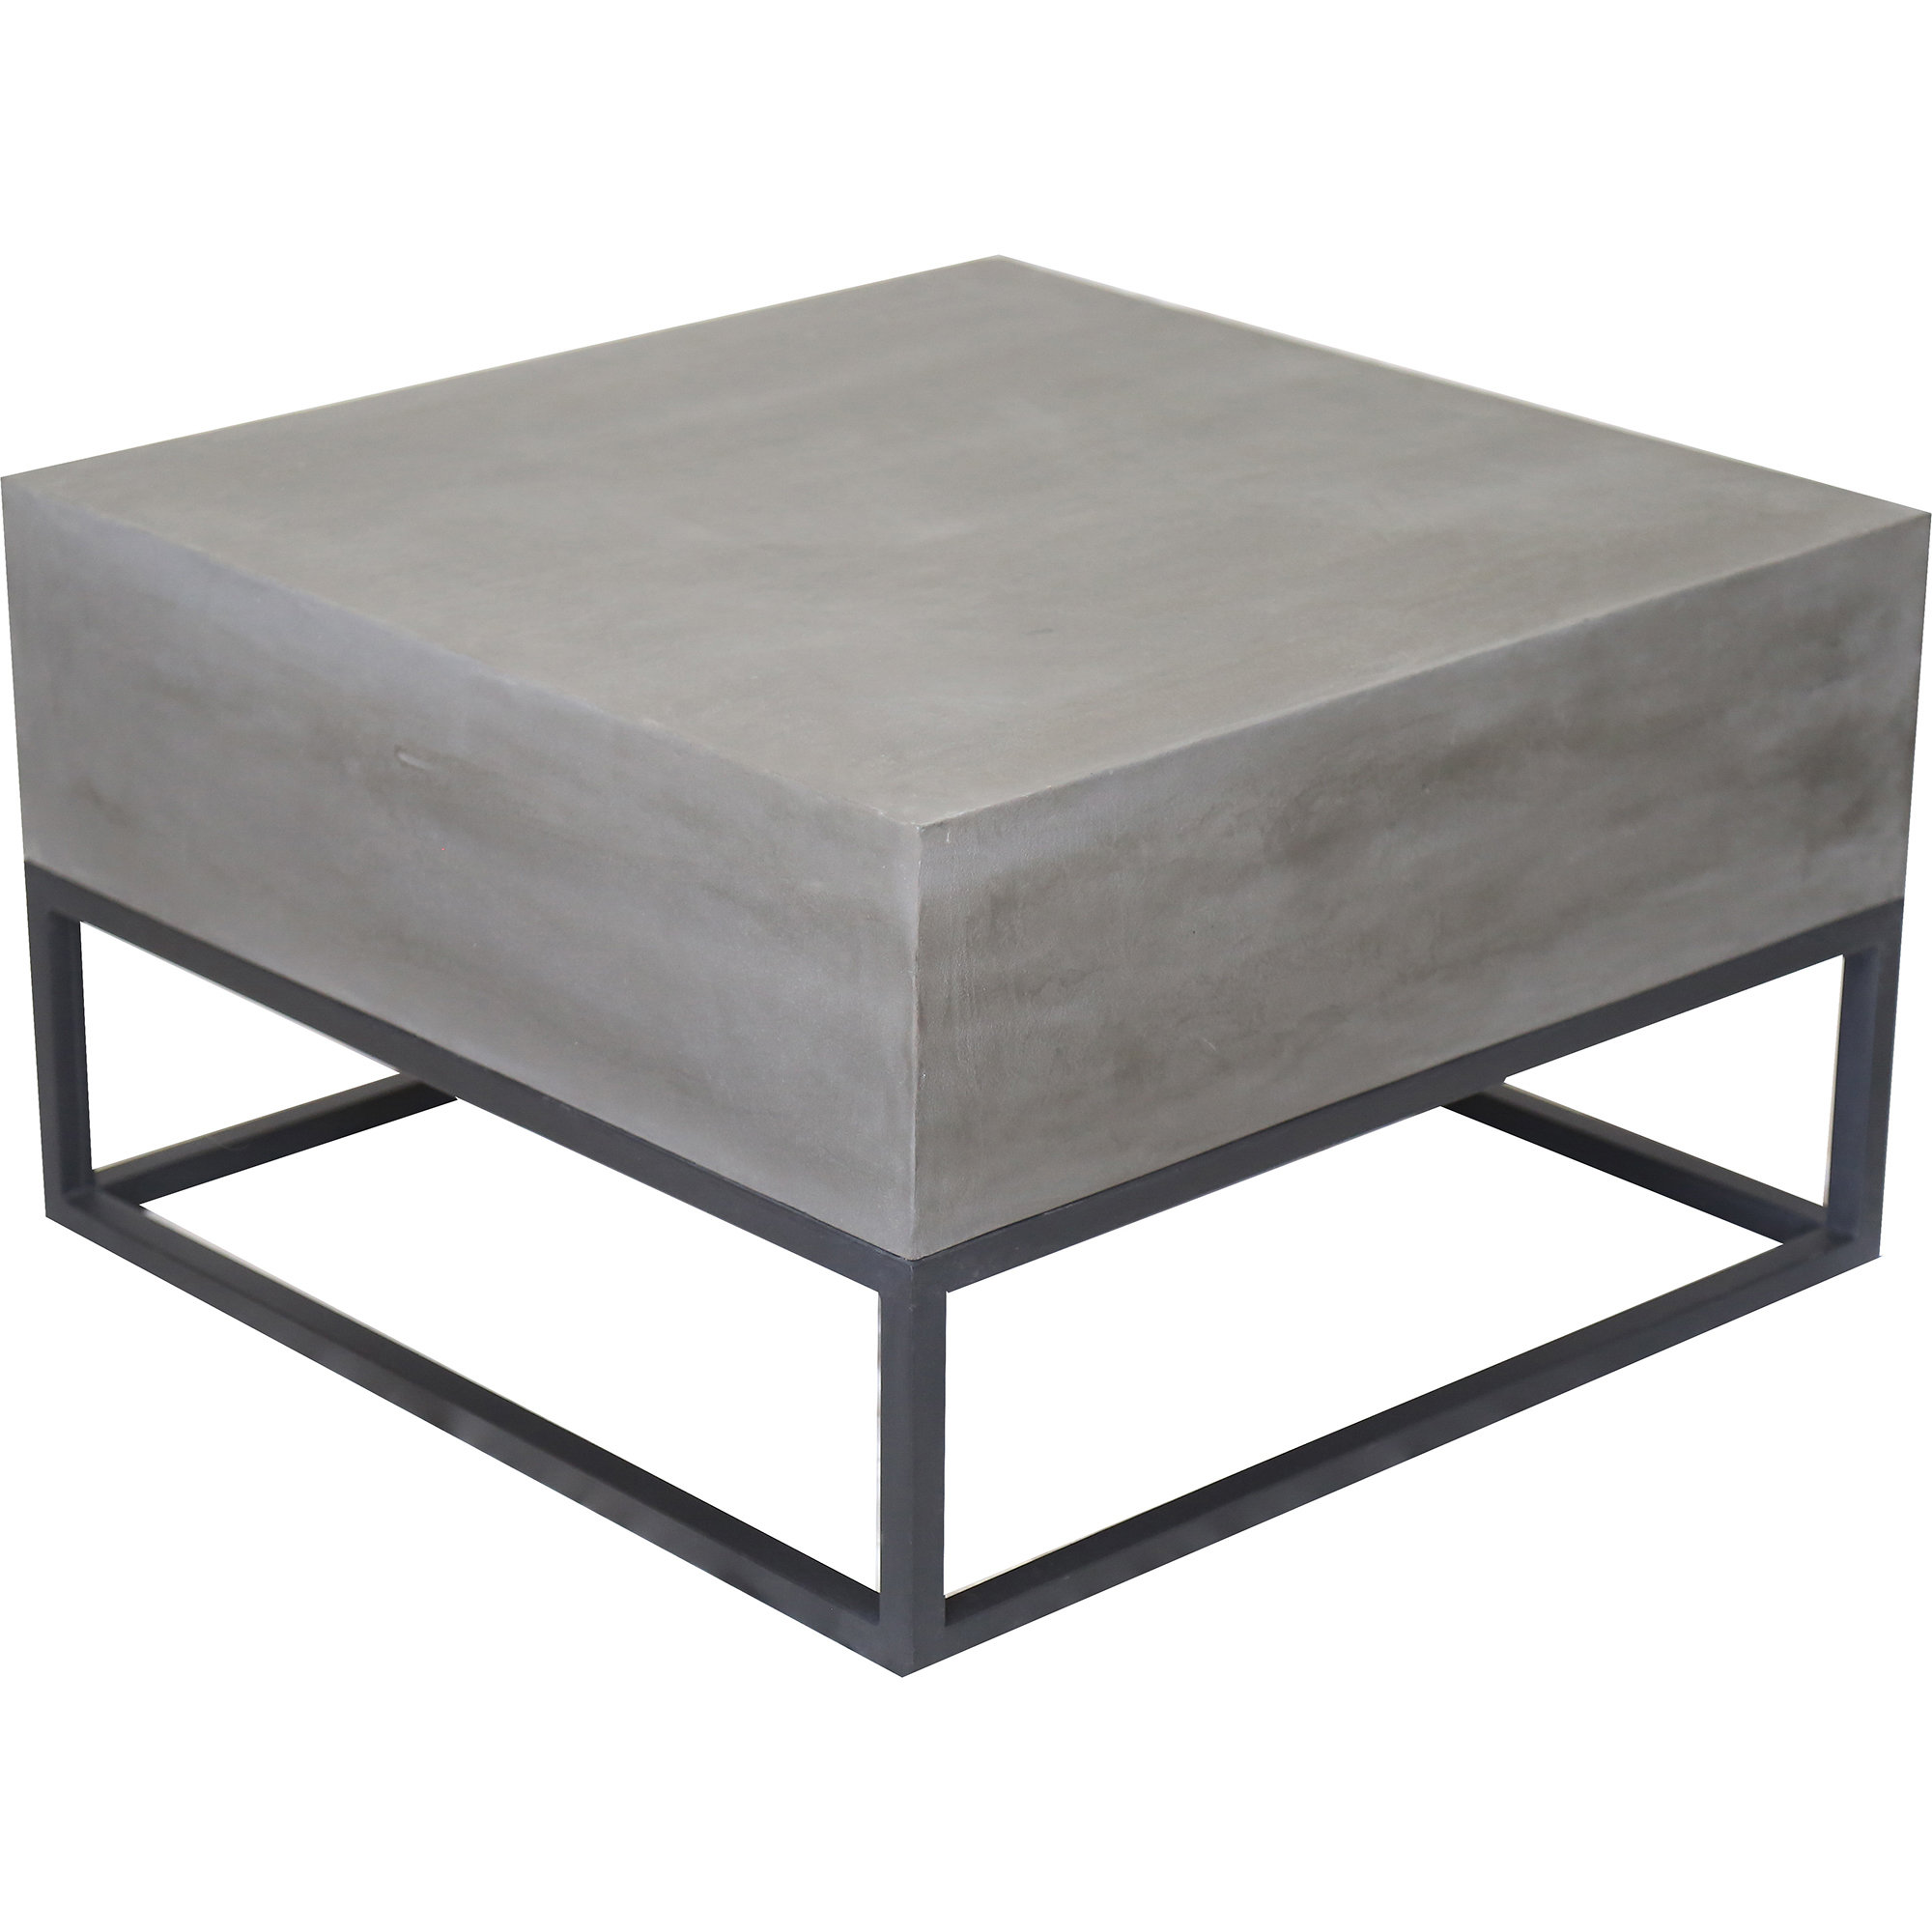 antique coffee table coen eryn accent nevina garden occasional tables rustic barnwood end canvas patio umbrella white and grey side colorful lamps waterford crystal solid wood